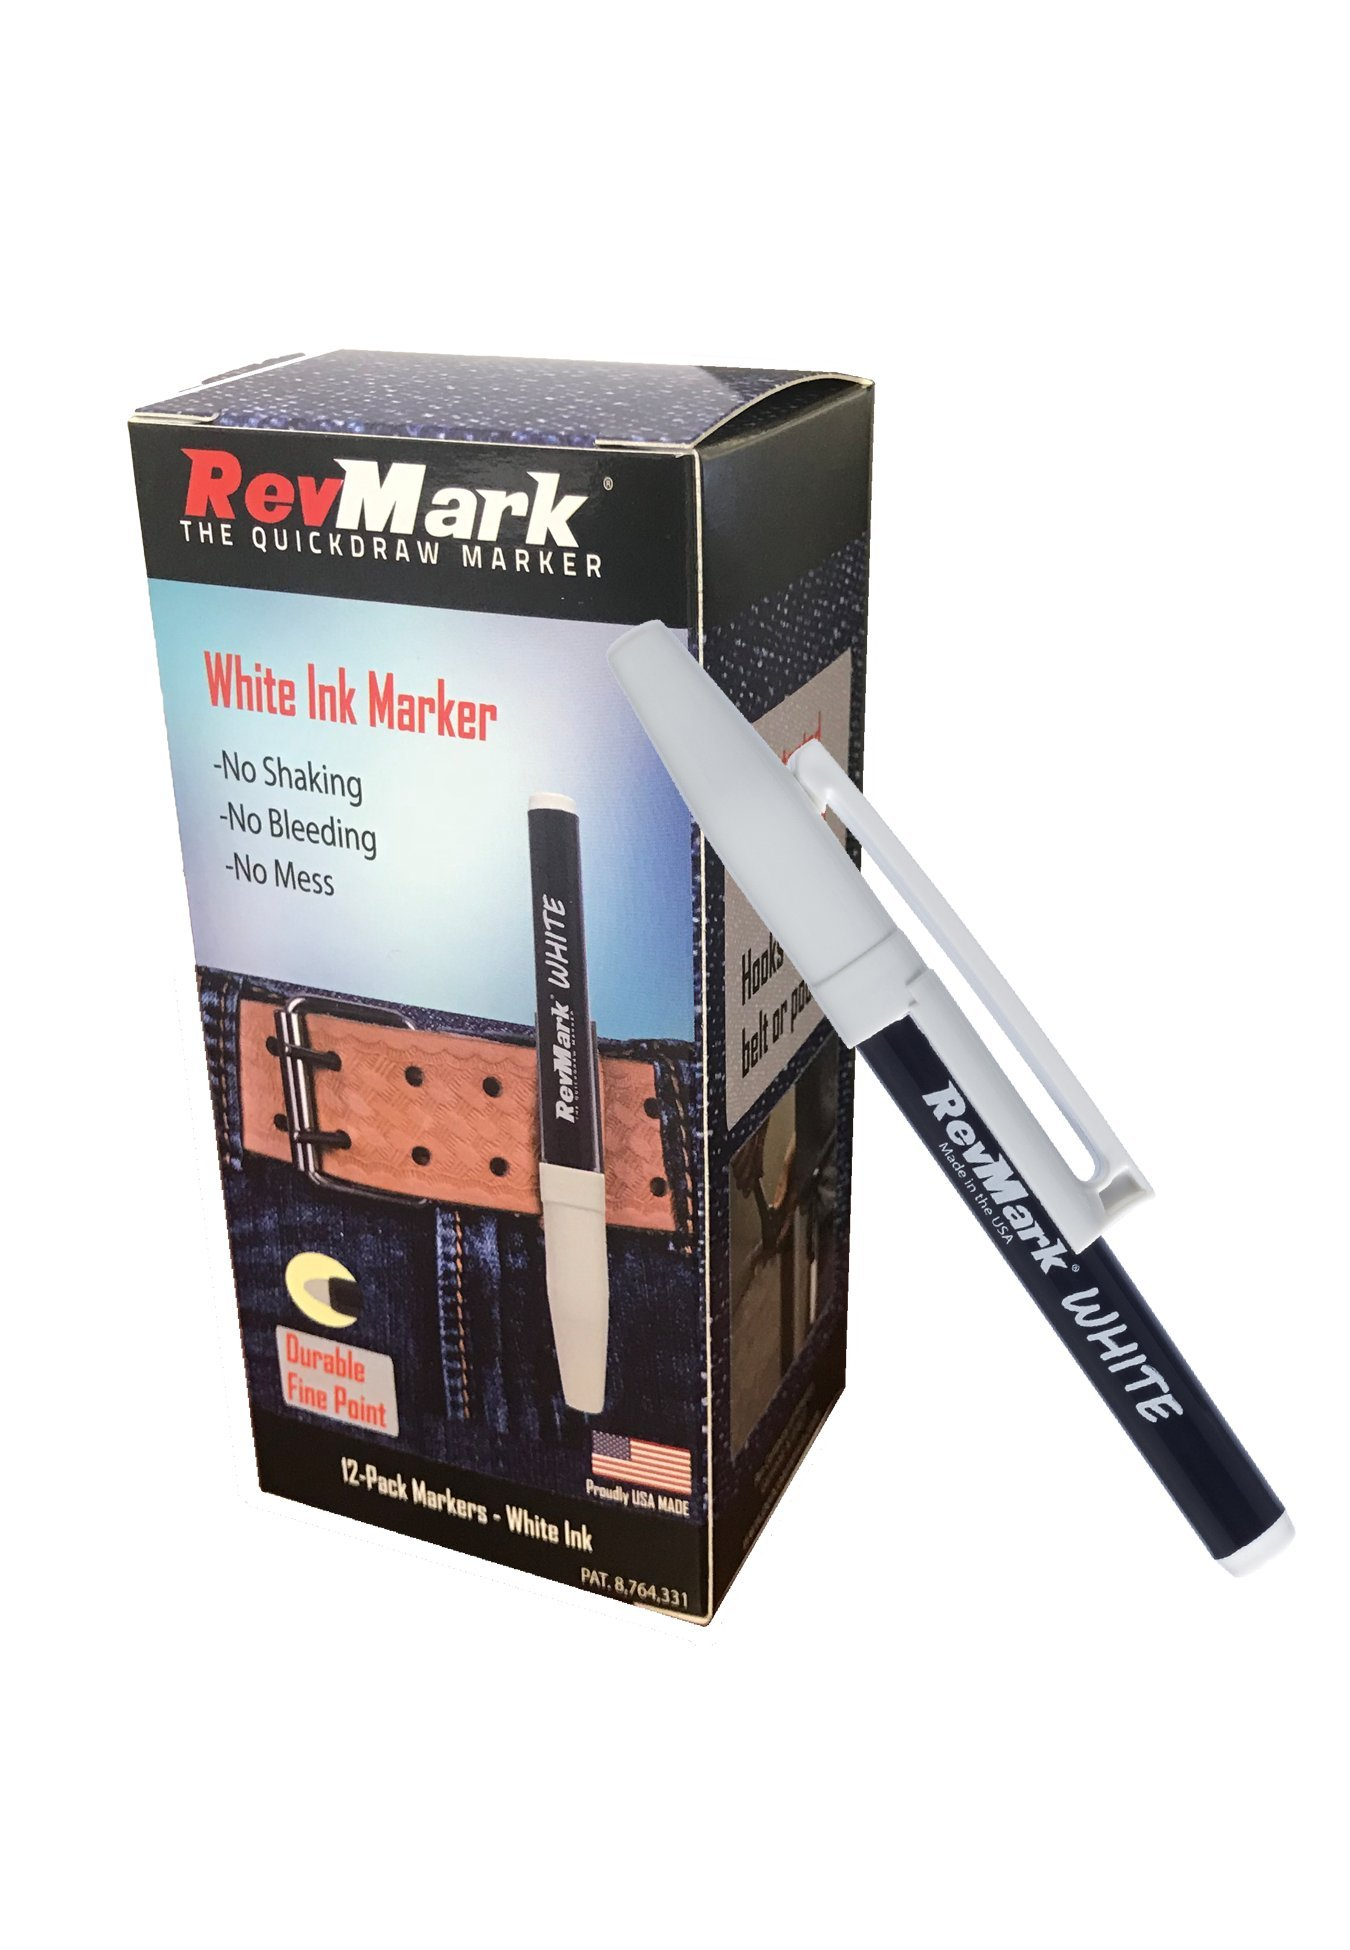 RevMark White Ink Industrial Marker - 12 Pack (Made in the USA)